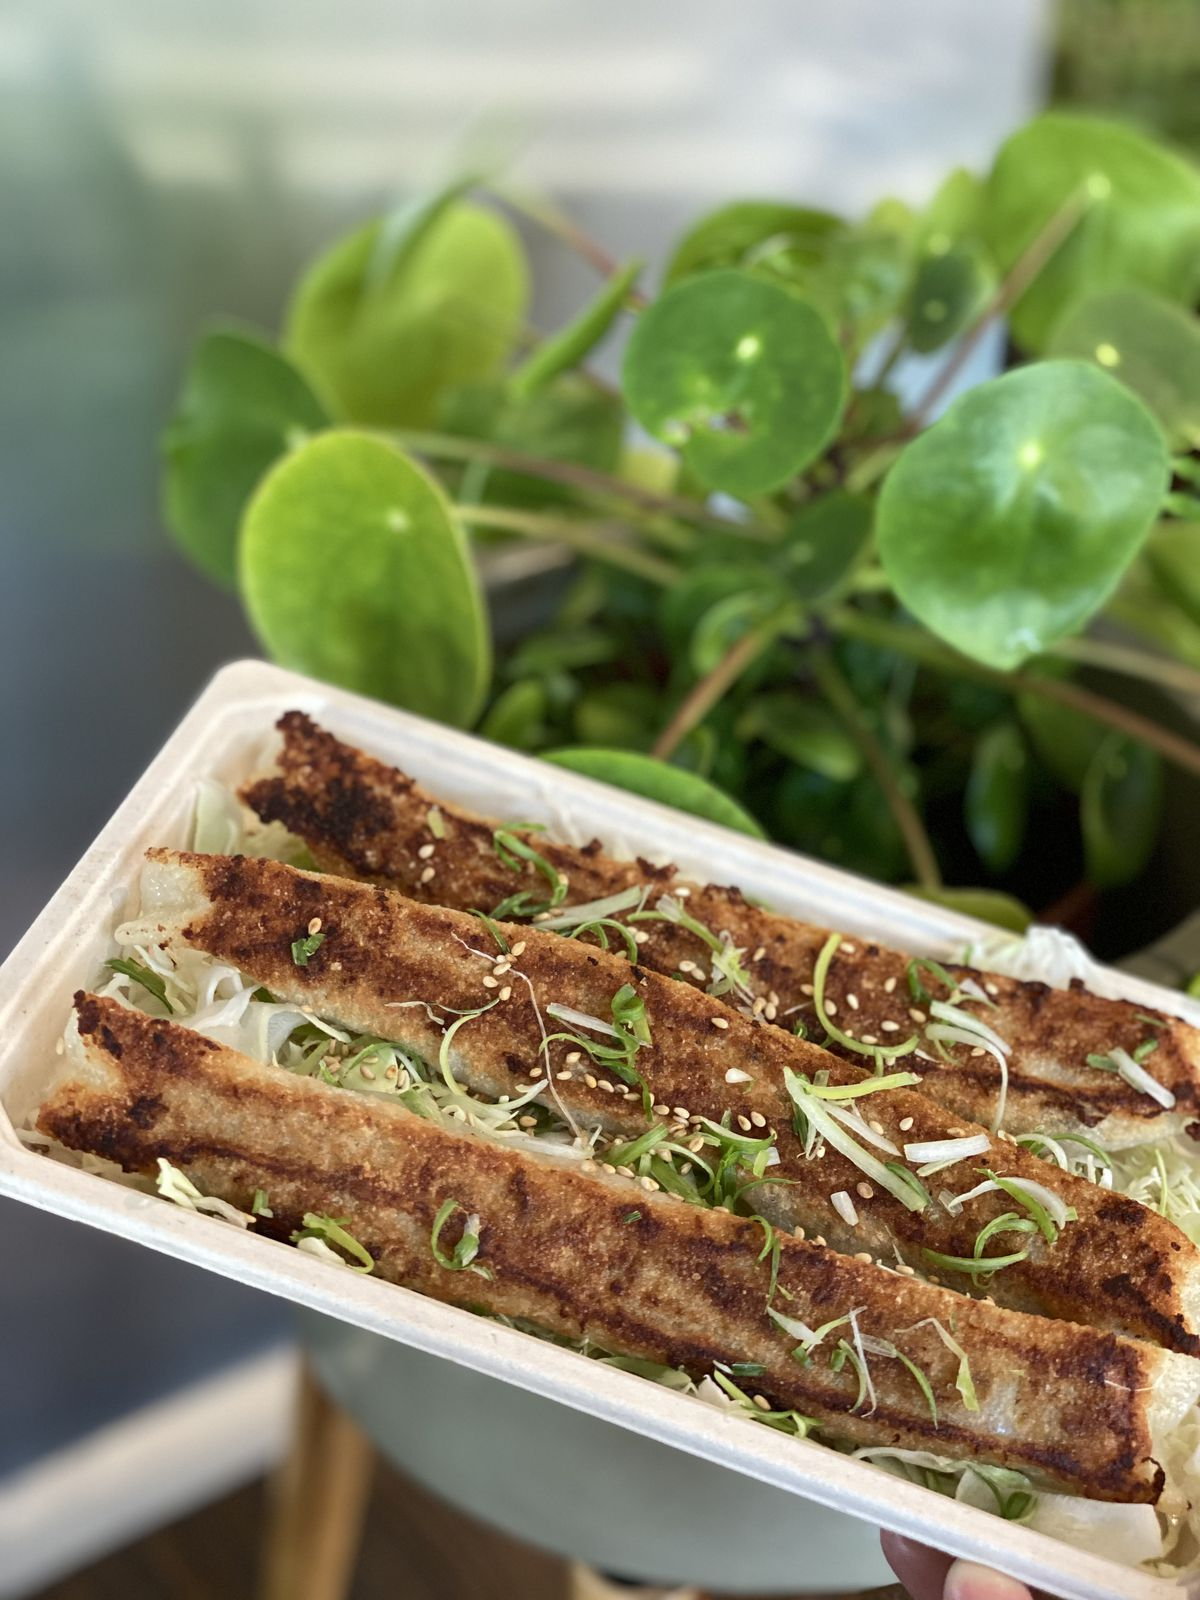 Long potstickers with brown crispy edges, garnished with scallion and sesame seeds